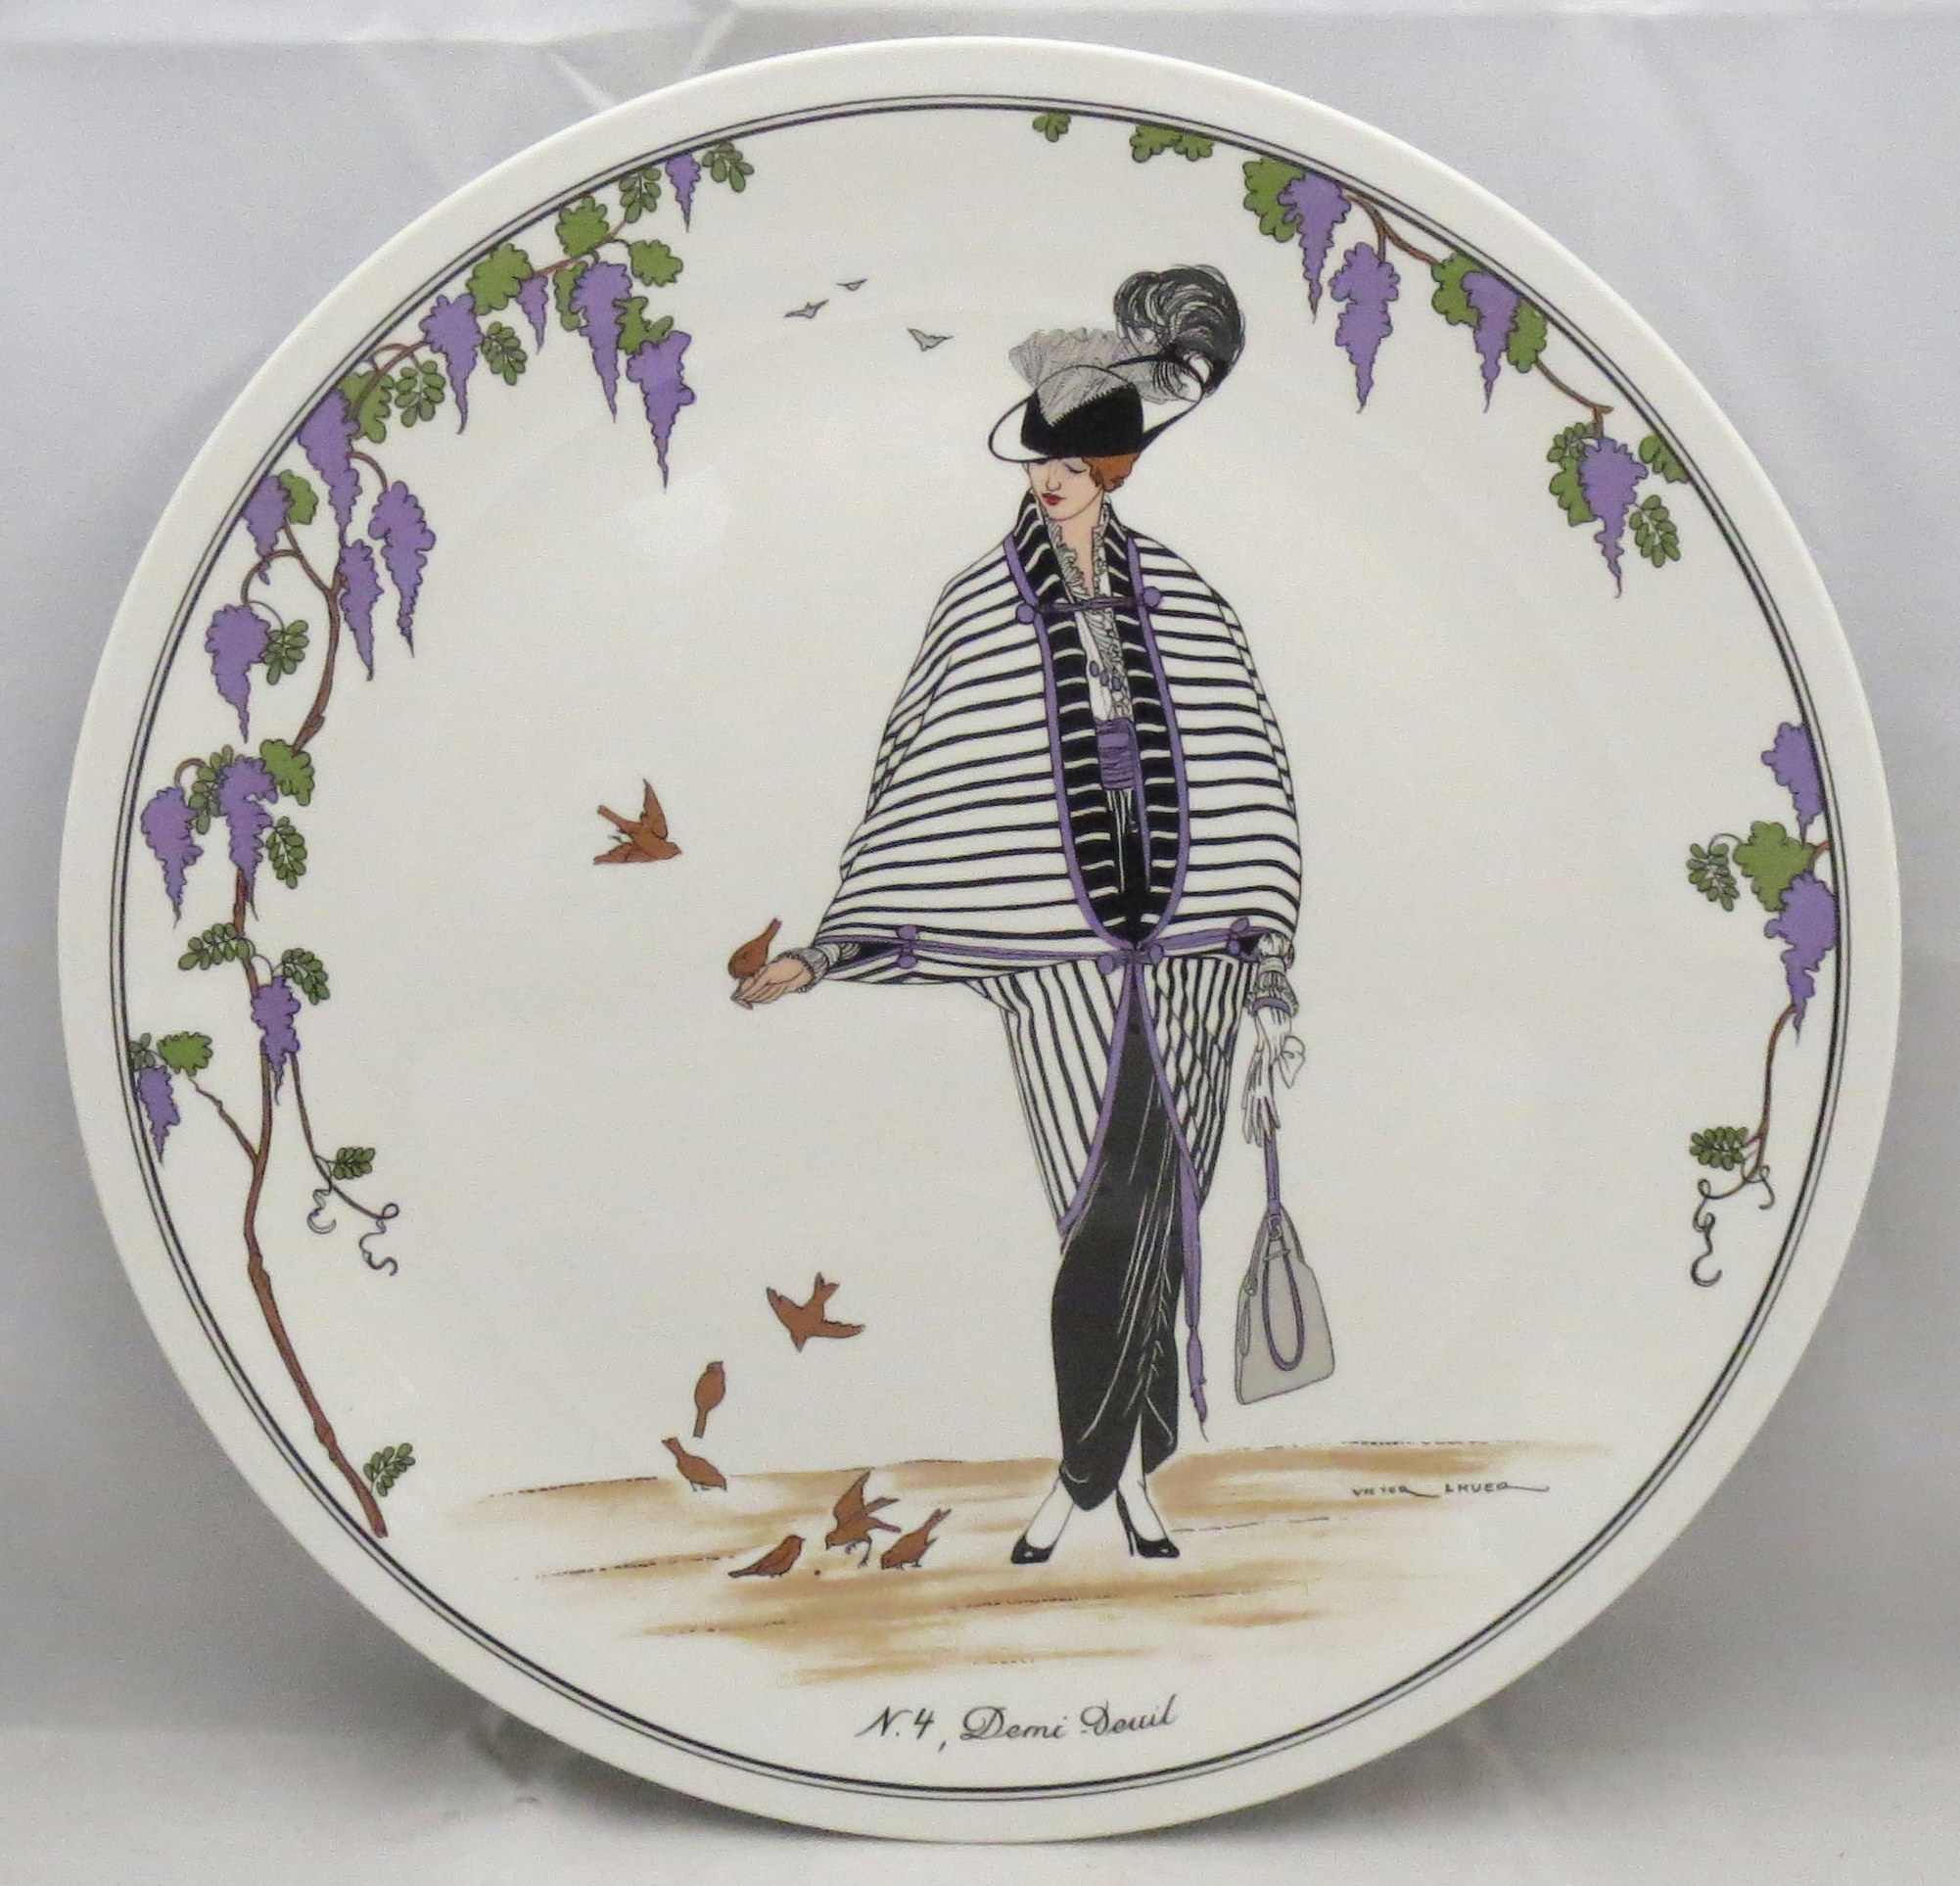 Villeroy Boch Design 1900 Dinner Plate